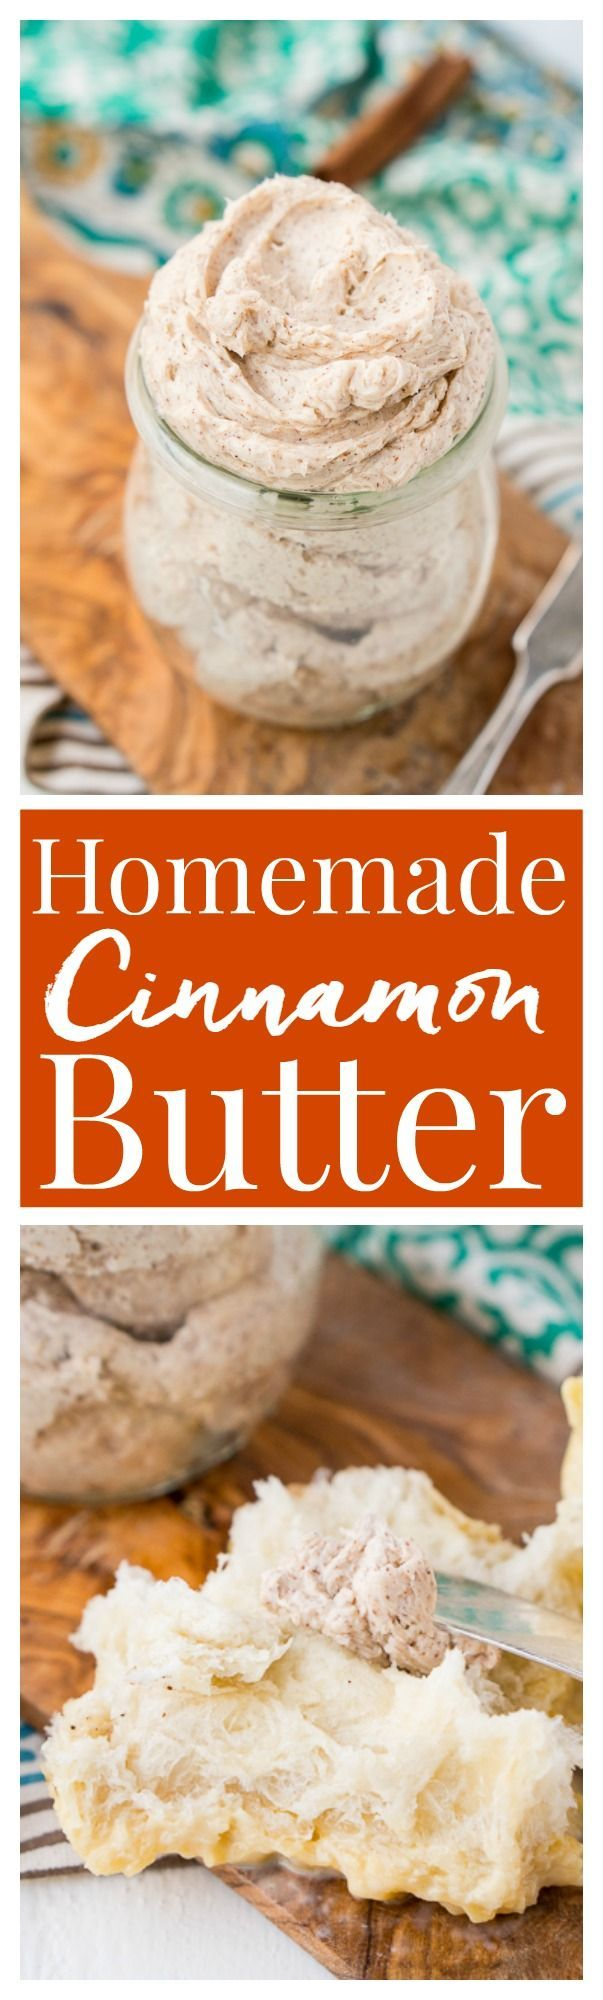 This Homemade Cinnamon Butter is bound to be a holiday table staple. Made in minutes in your stand mixer or blender, you can whip up this delicious, creamy, and spicy butter that's perfect for spreading on dinner rolls, toast, and sweet potatoes! And don't forget to brag that you made it!